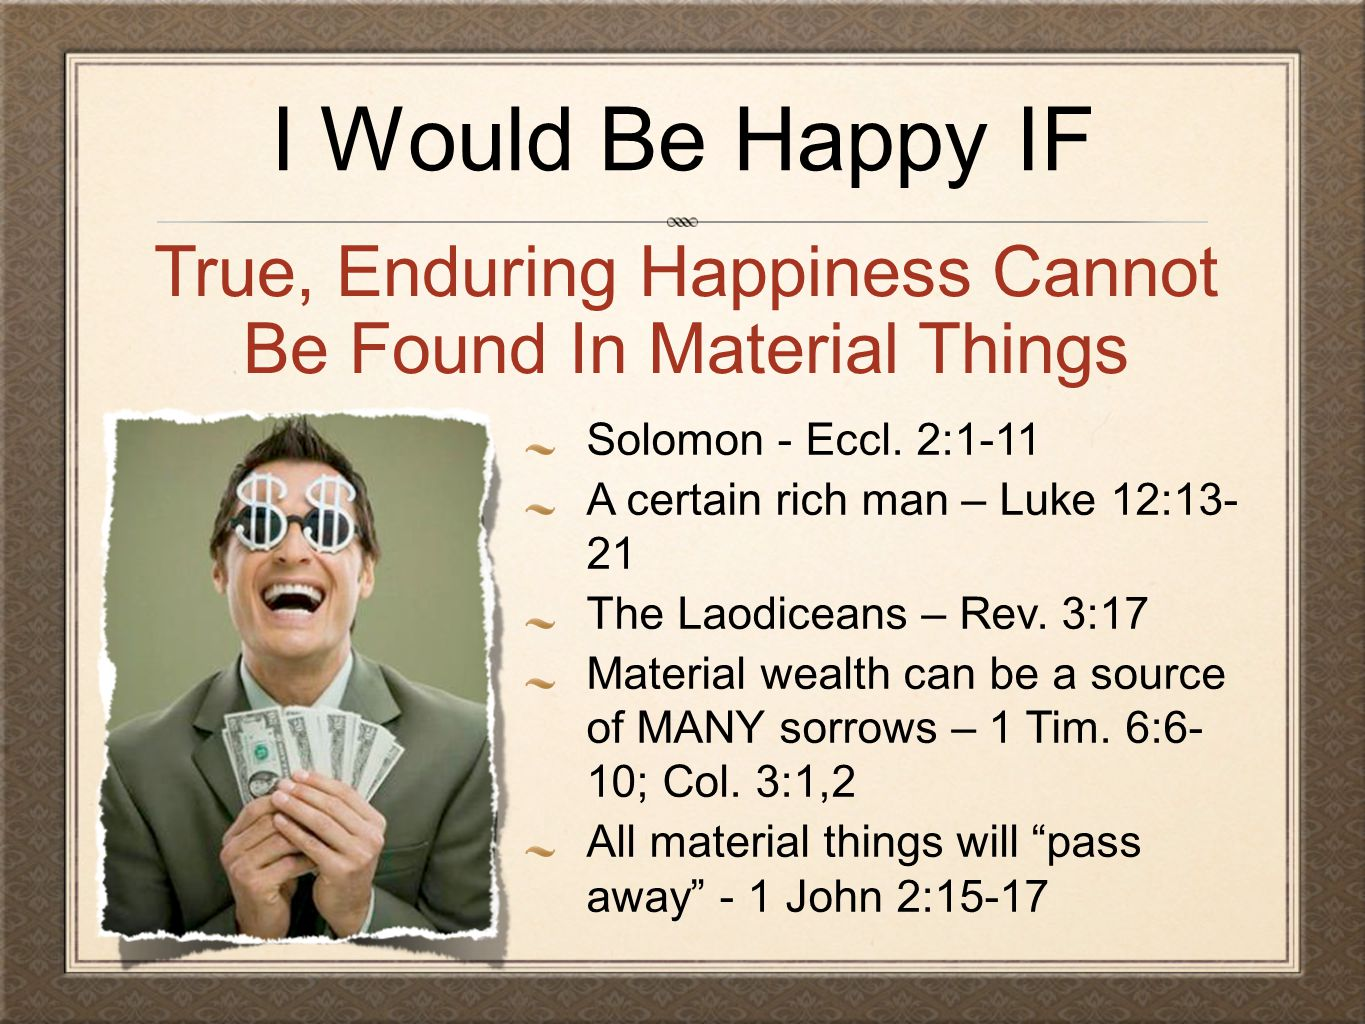 True, Enduring Happiness Cannot Be Found In Material Things